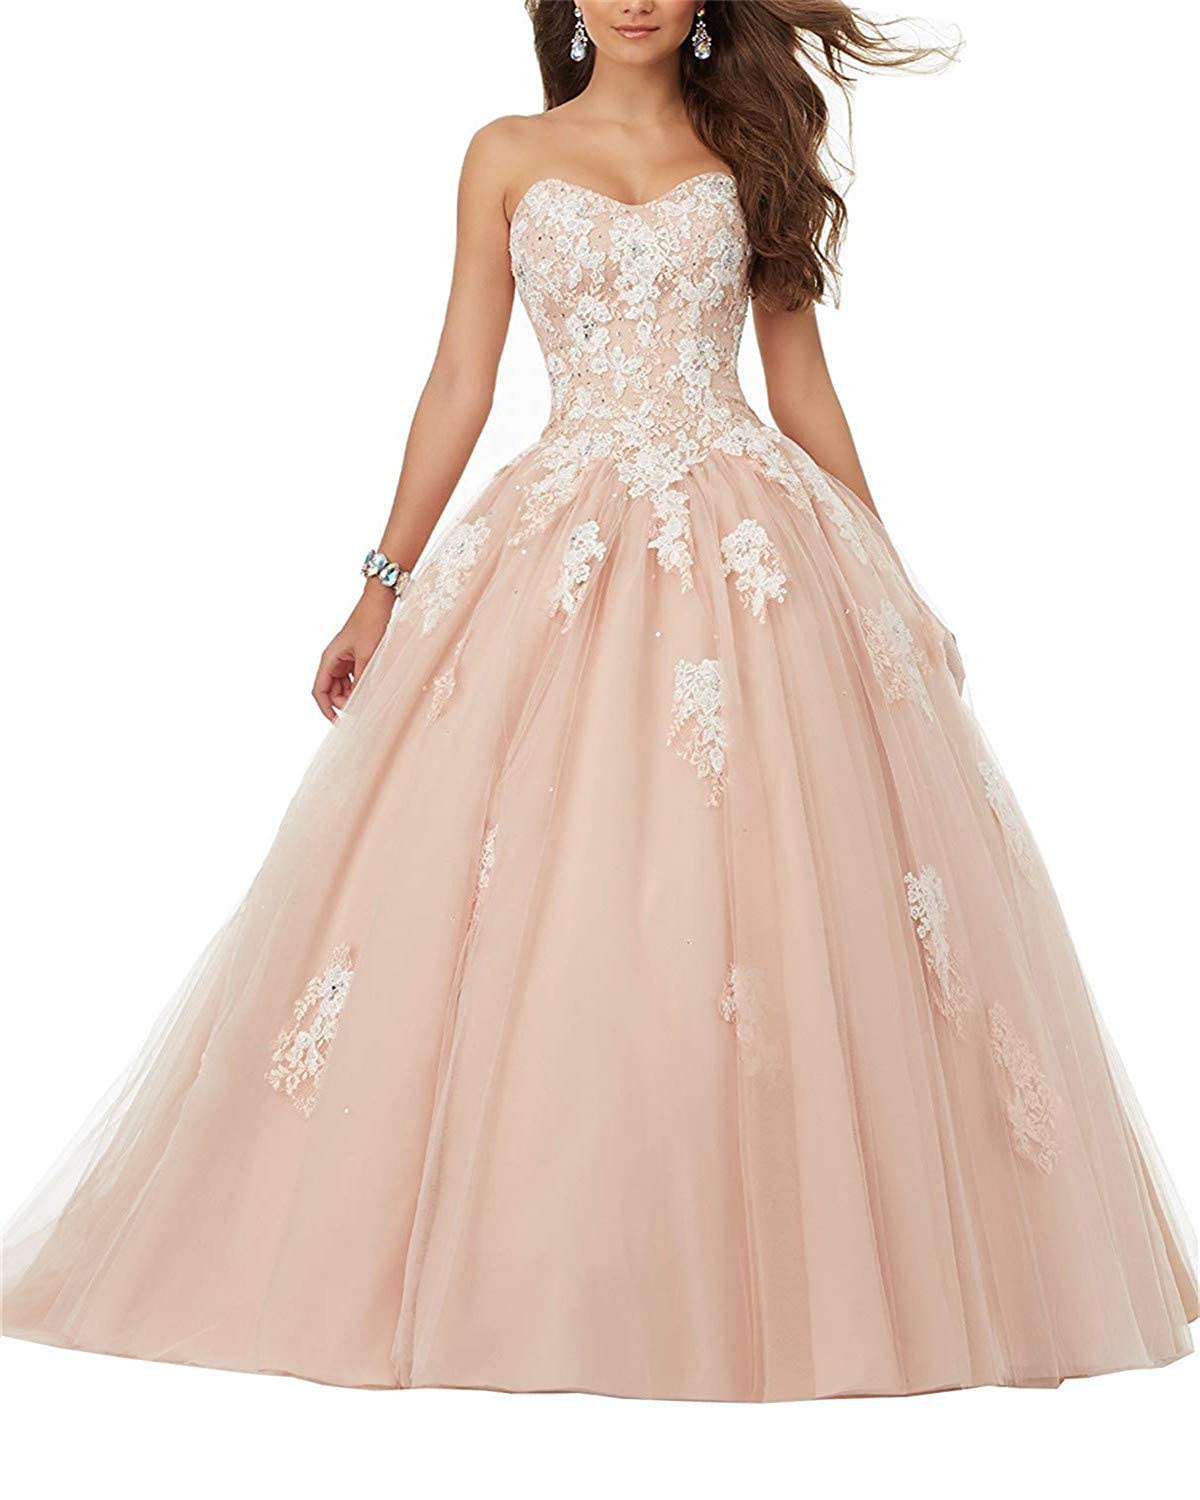 Light Pink Sophie Women's Strapless Sweetheart Lace Applique Sweet 15 Ball Gowns Quinceanera Dress S198